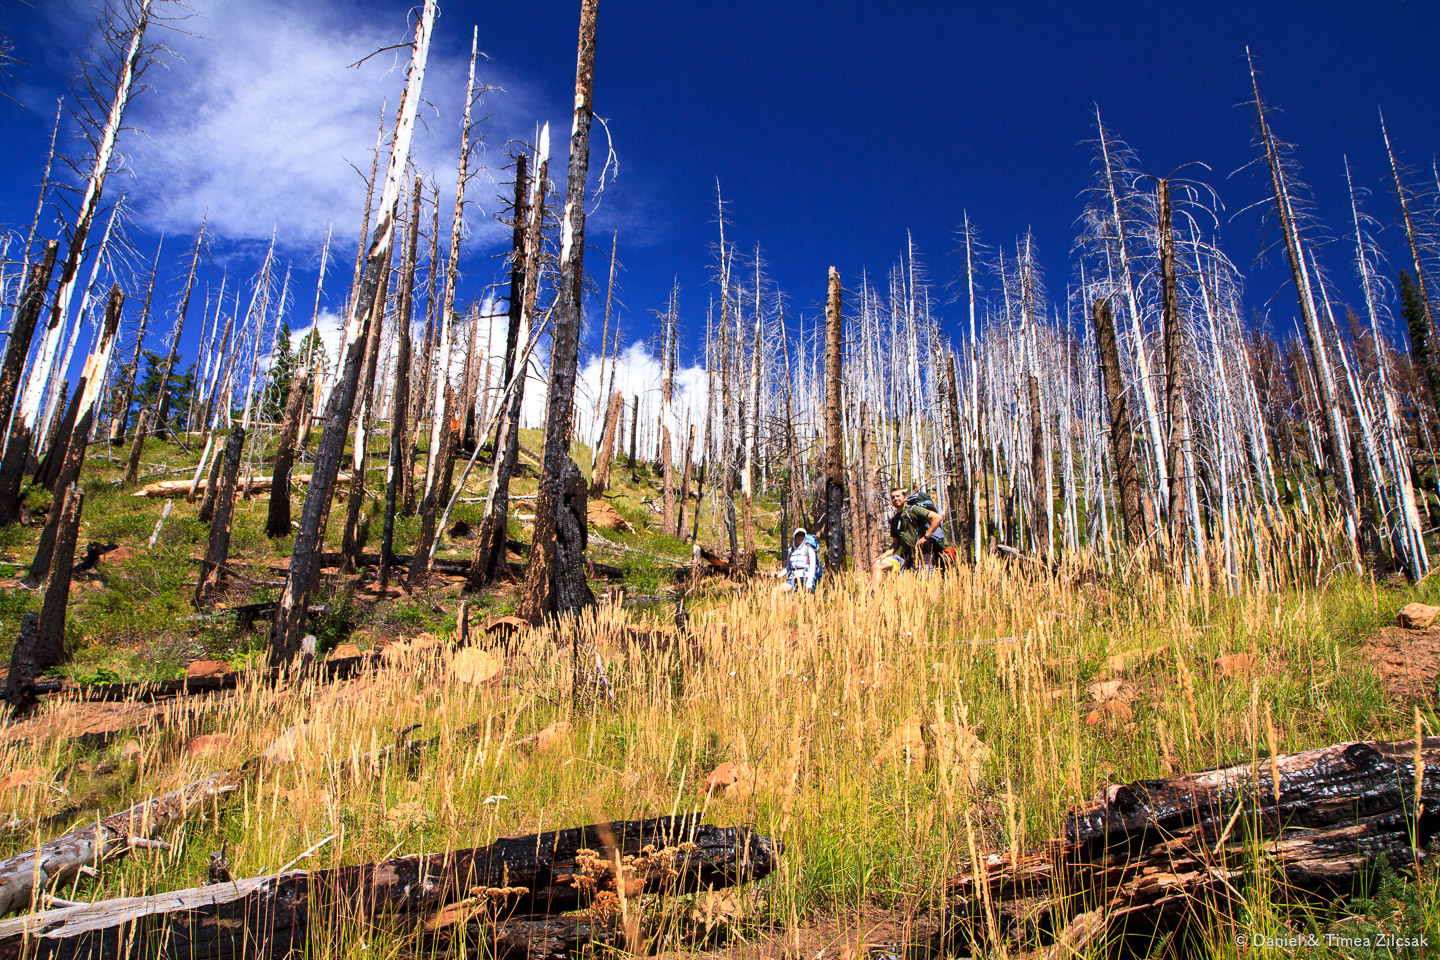 Higher up, more charred trees